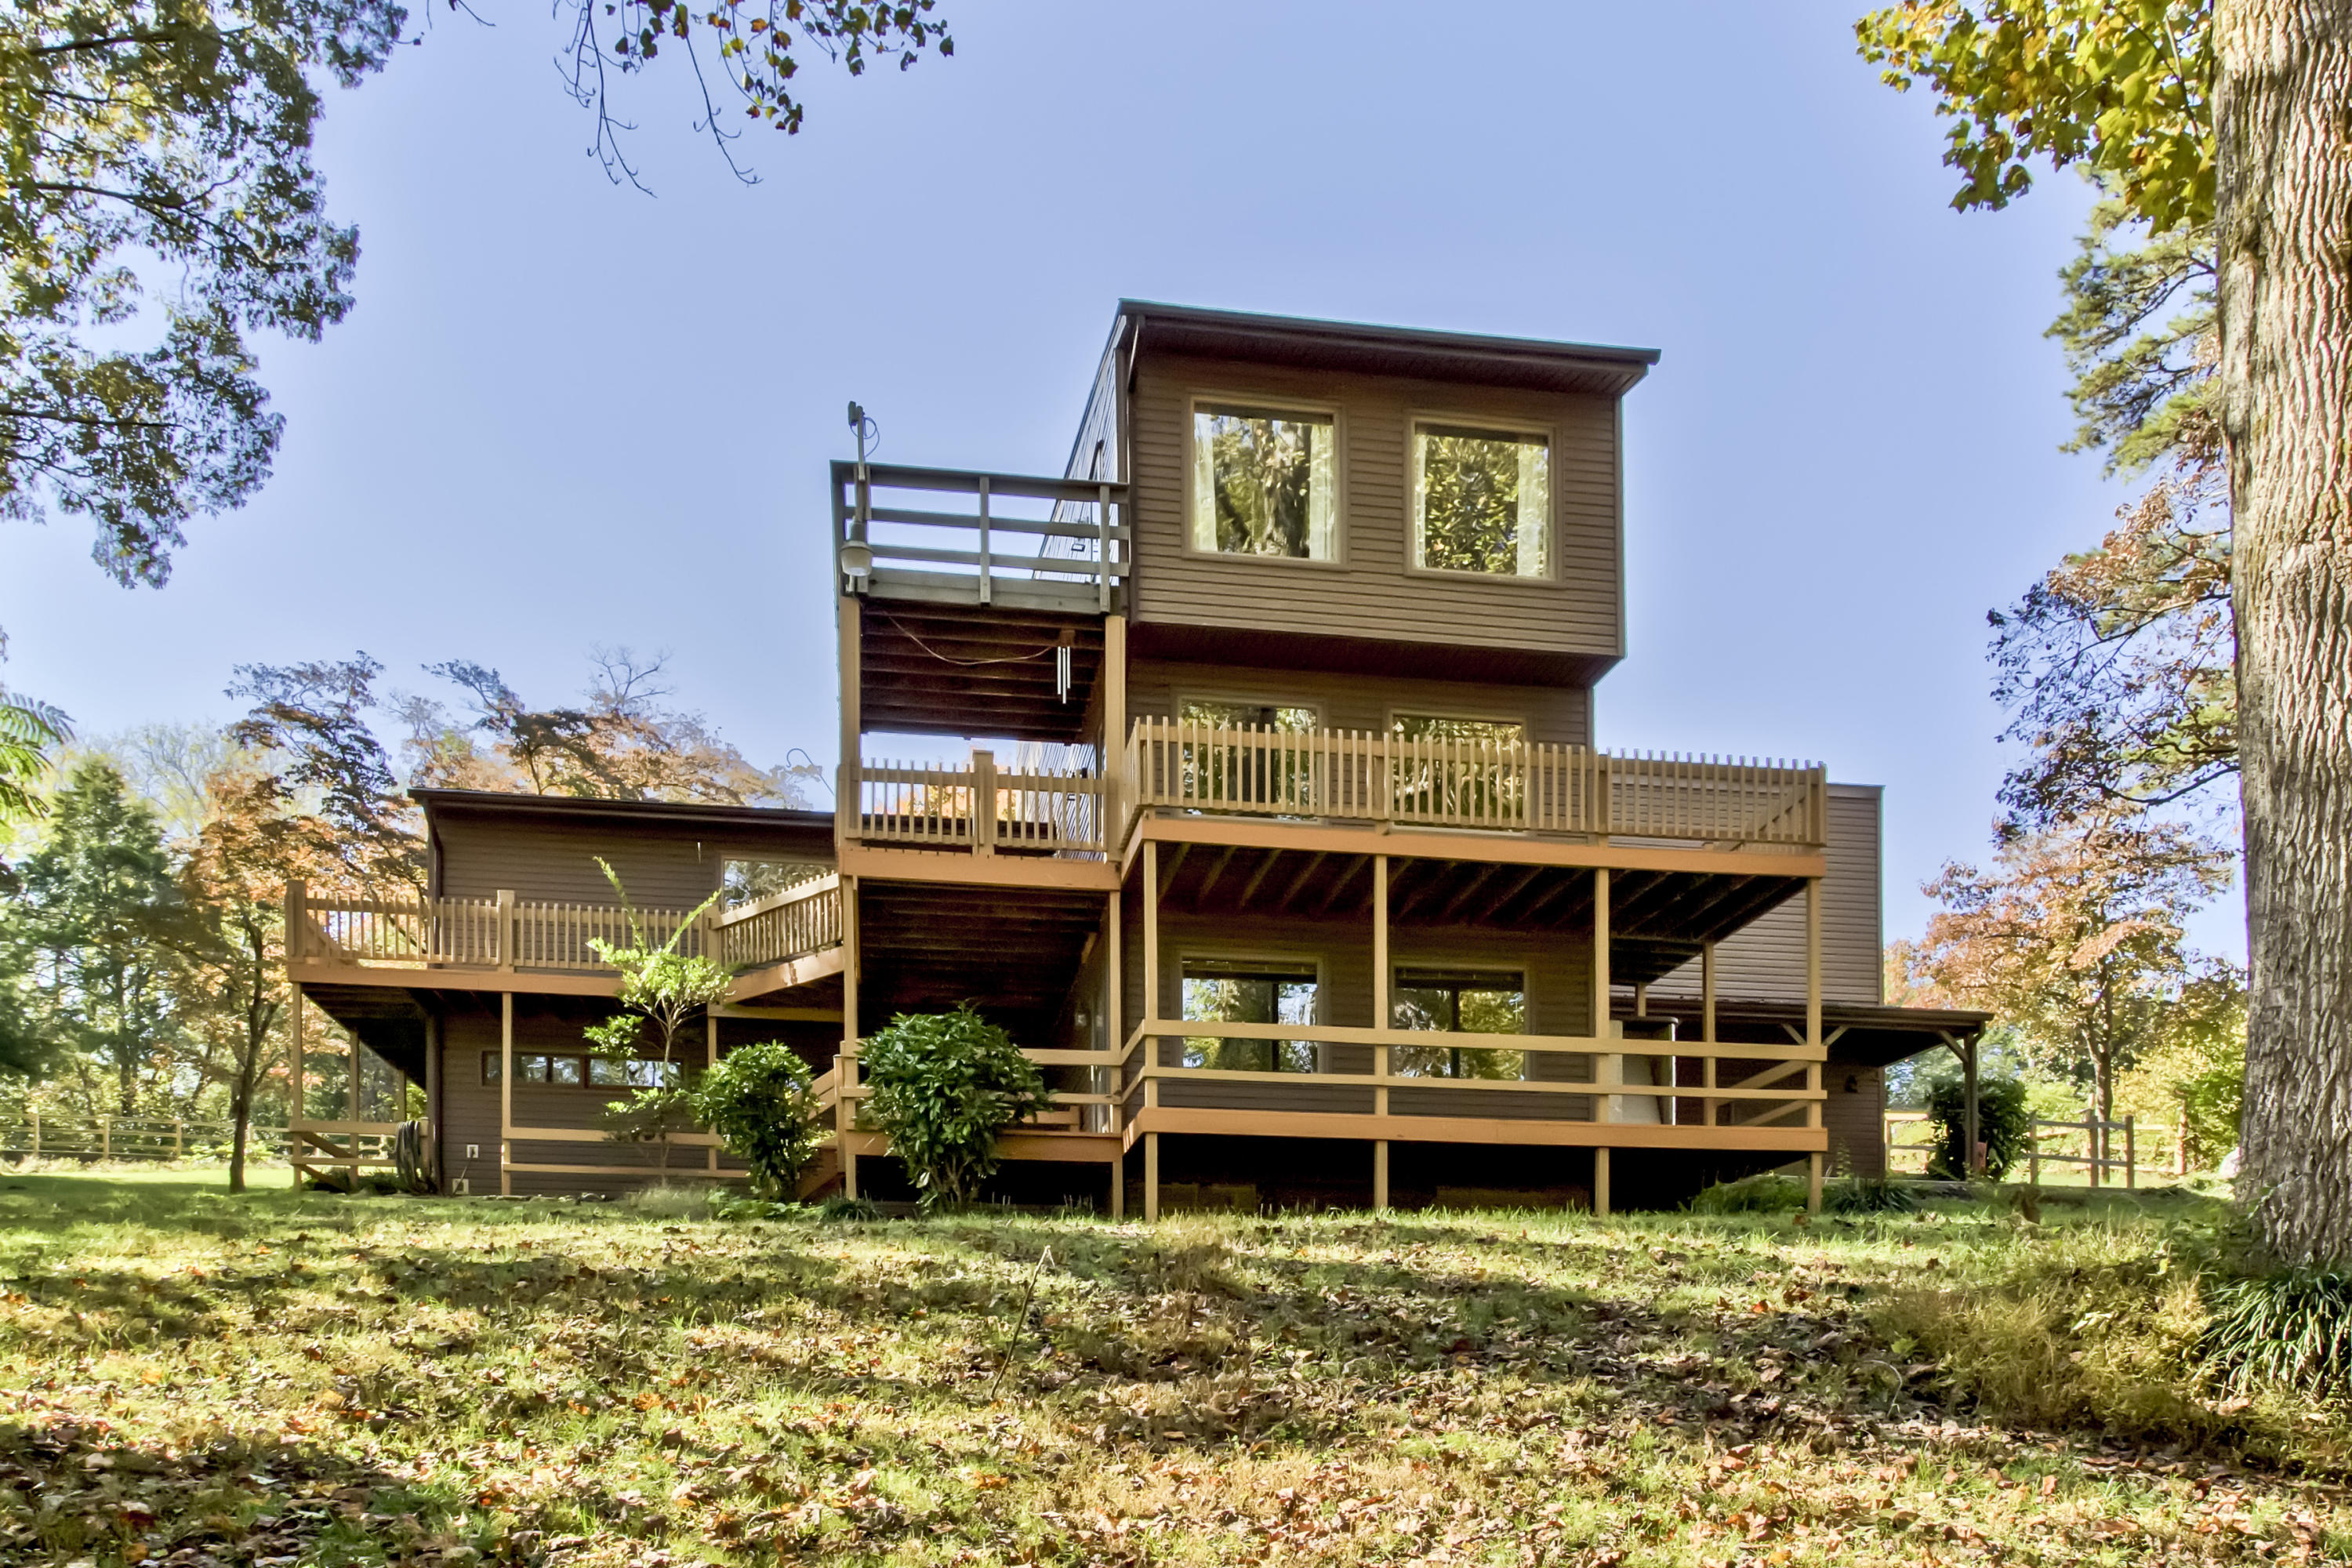 2530 Hope Creek Rd: